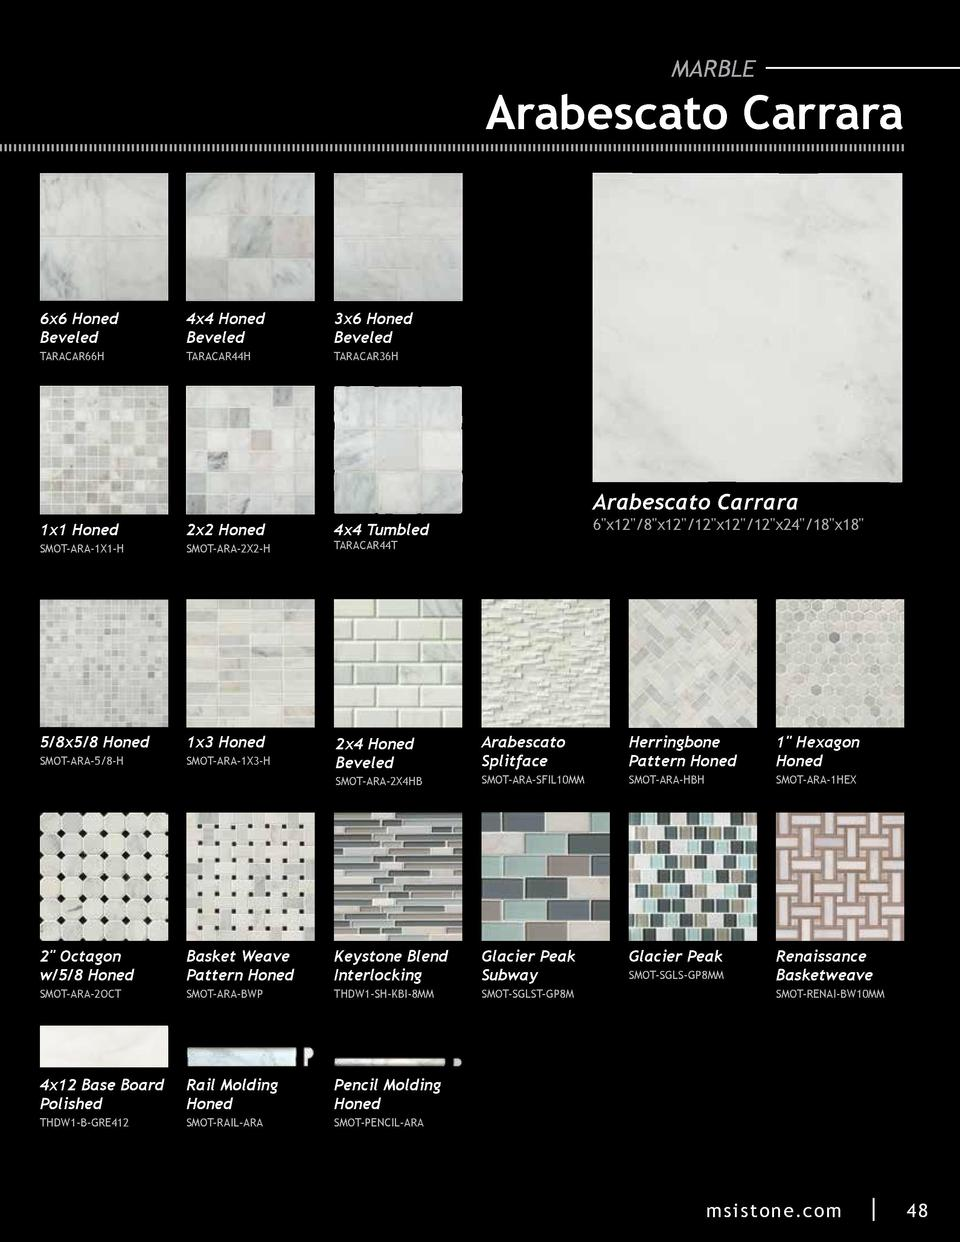 MARBLE  Arabescato Carrara  6x6 Honed Beveled  4x4 Honed Beveled  3x6 Honed Beveled  TARACAR66H  TARACAR44H  TARACAR36H  A...